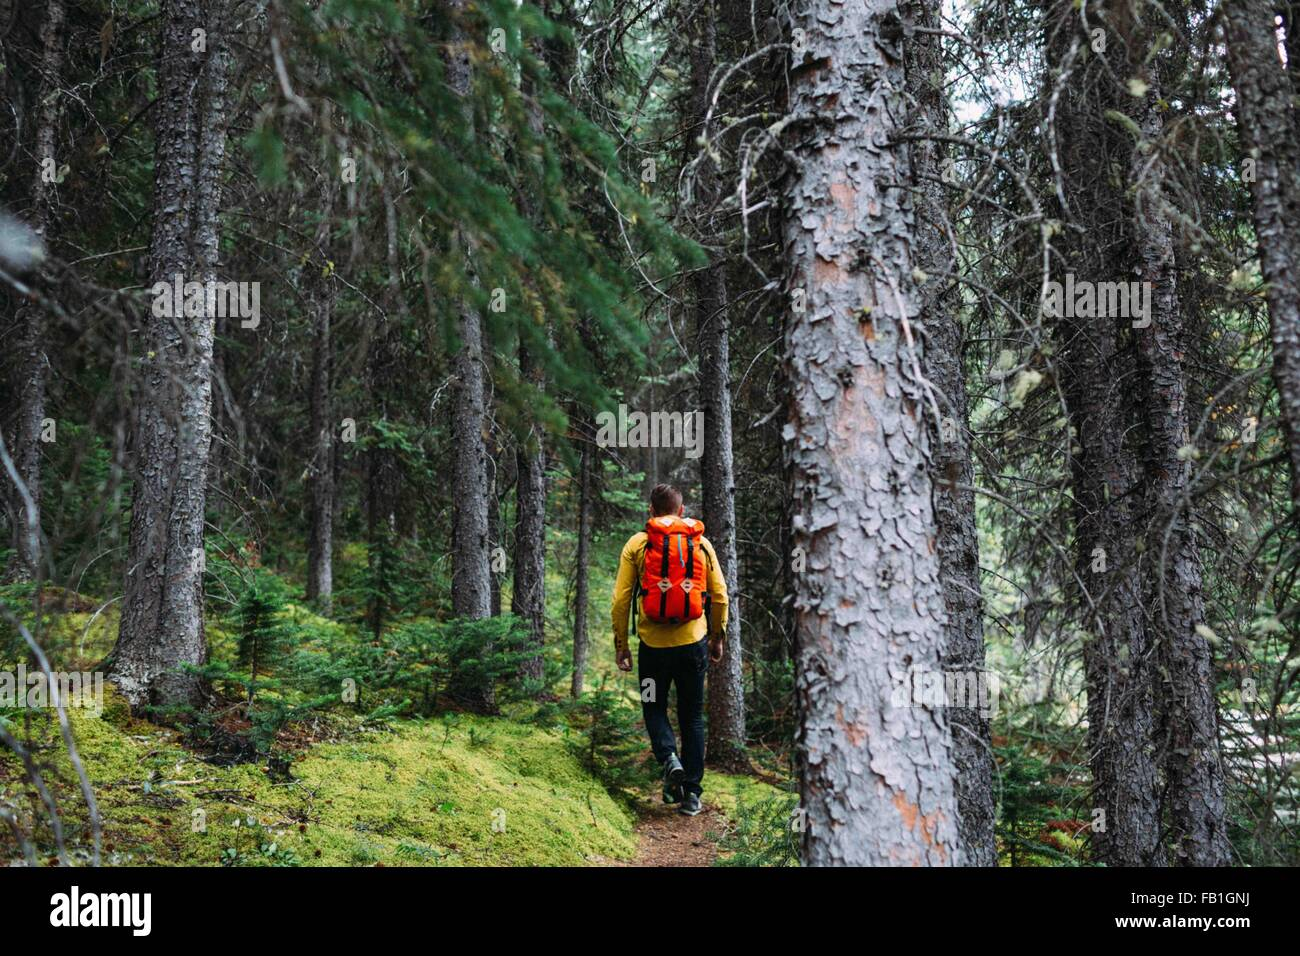 Rear view of mid adult man carrying orange backpack trekking through forest, Moraine lake, Banff National Park, - Stock Image